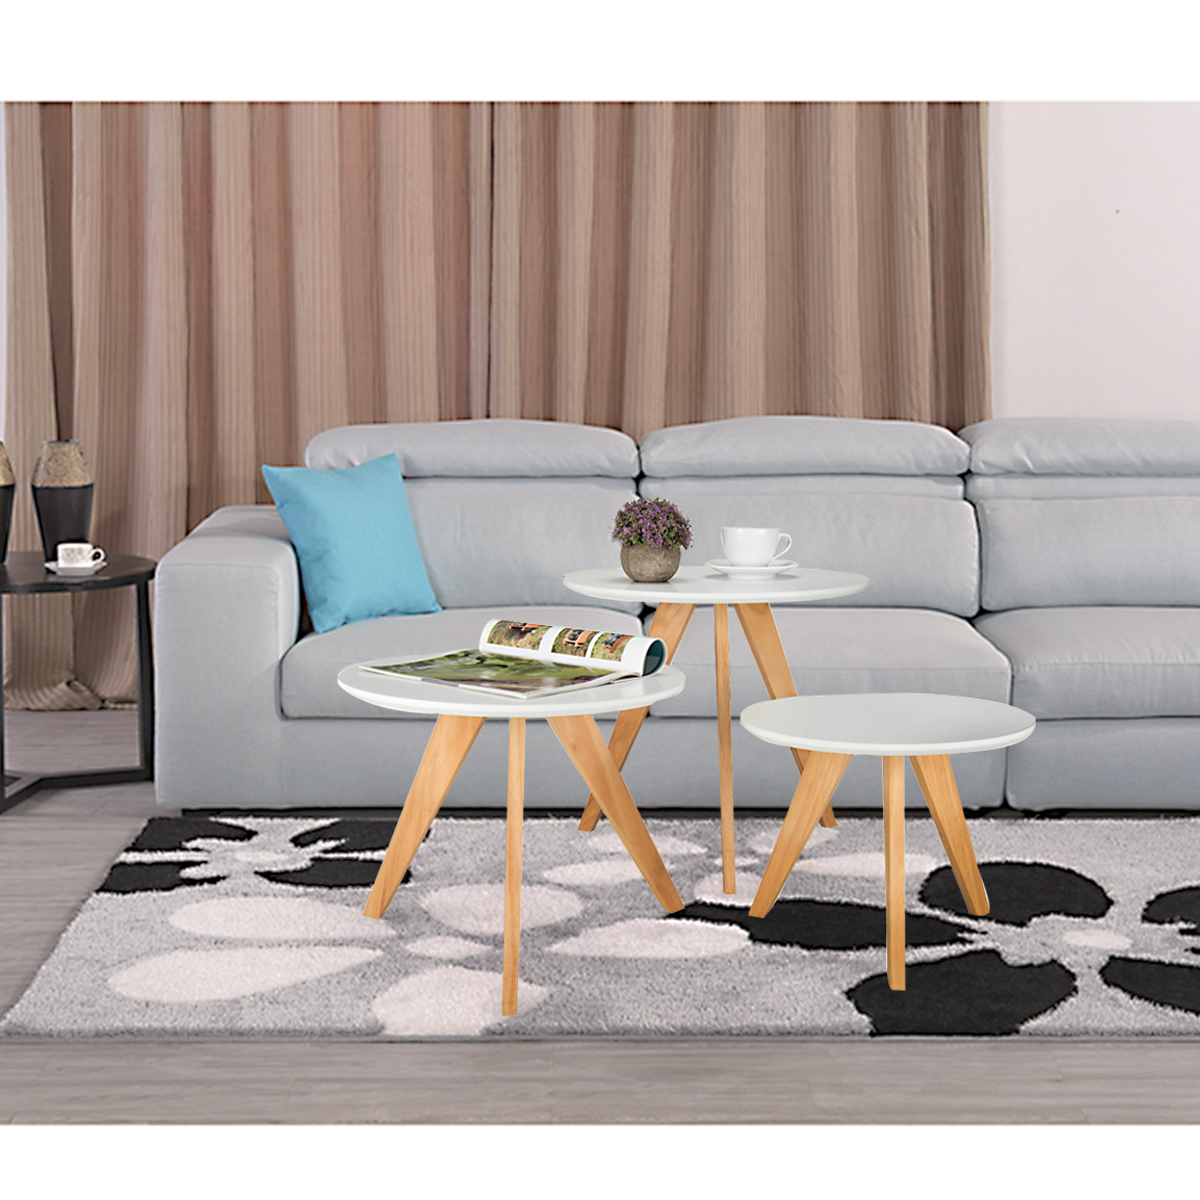 Set Of 3 Wooden Coffee Table Modern Round Nest Of Tables